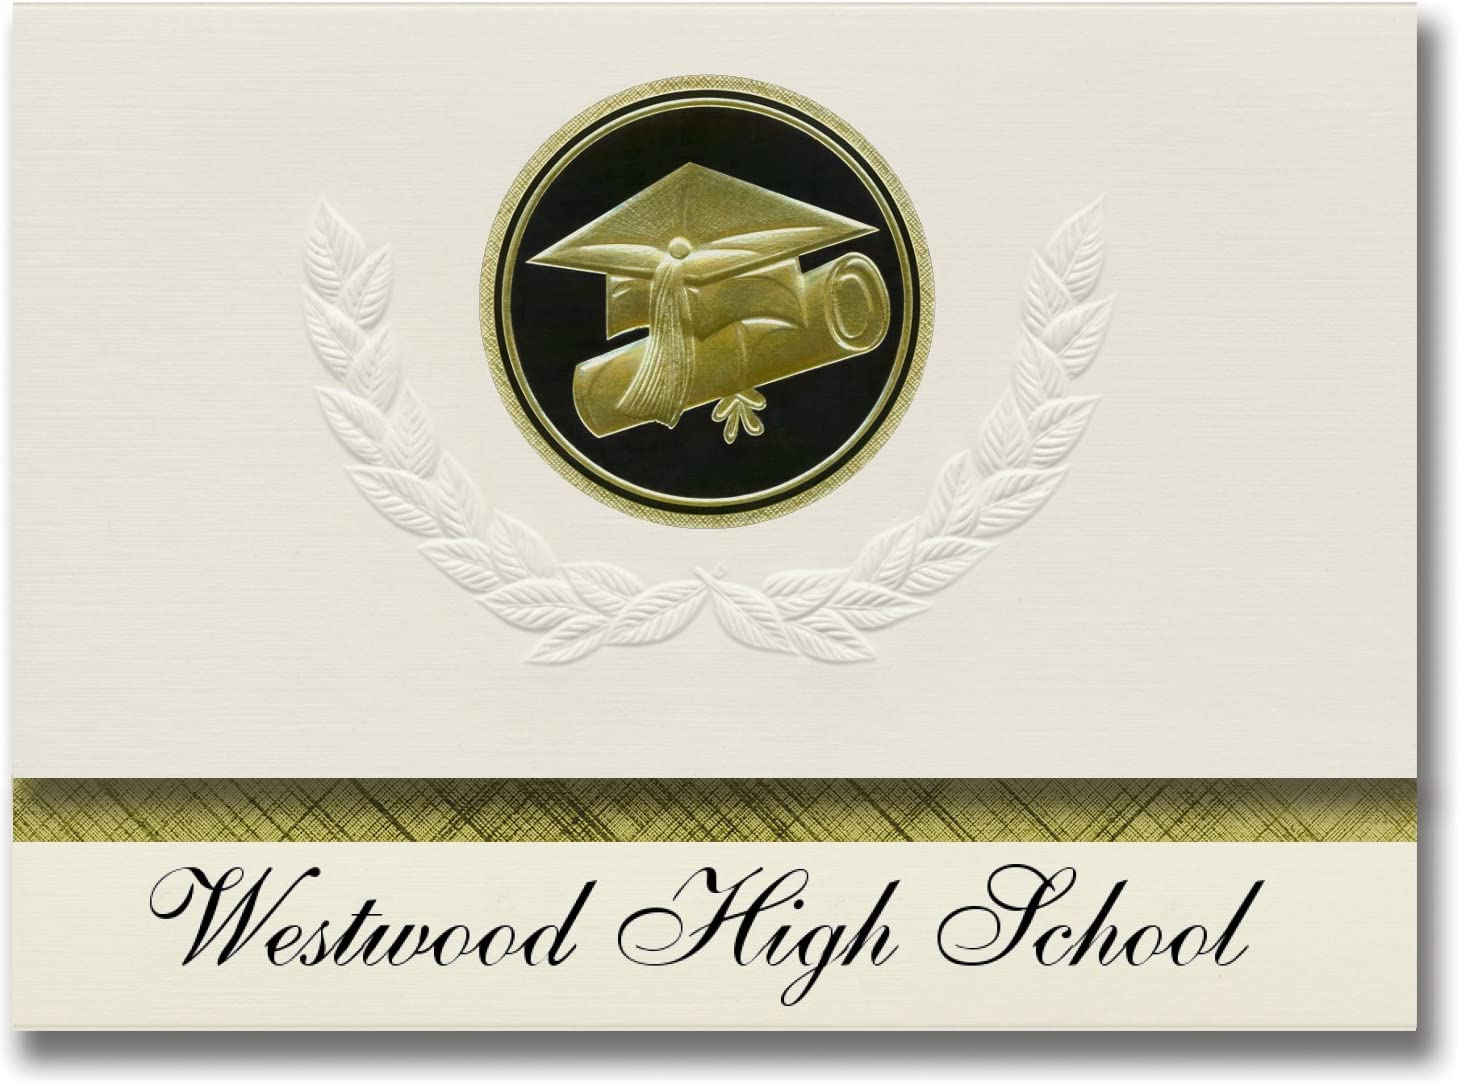 Signature Announcements Westwood High School (Gillette, WY) Graduation Announcements, Presidential style, Elite package of 25 Cap & Diploma Seal Black & Gold